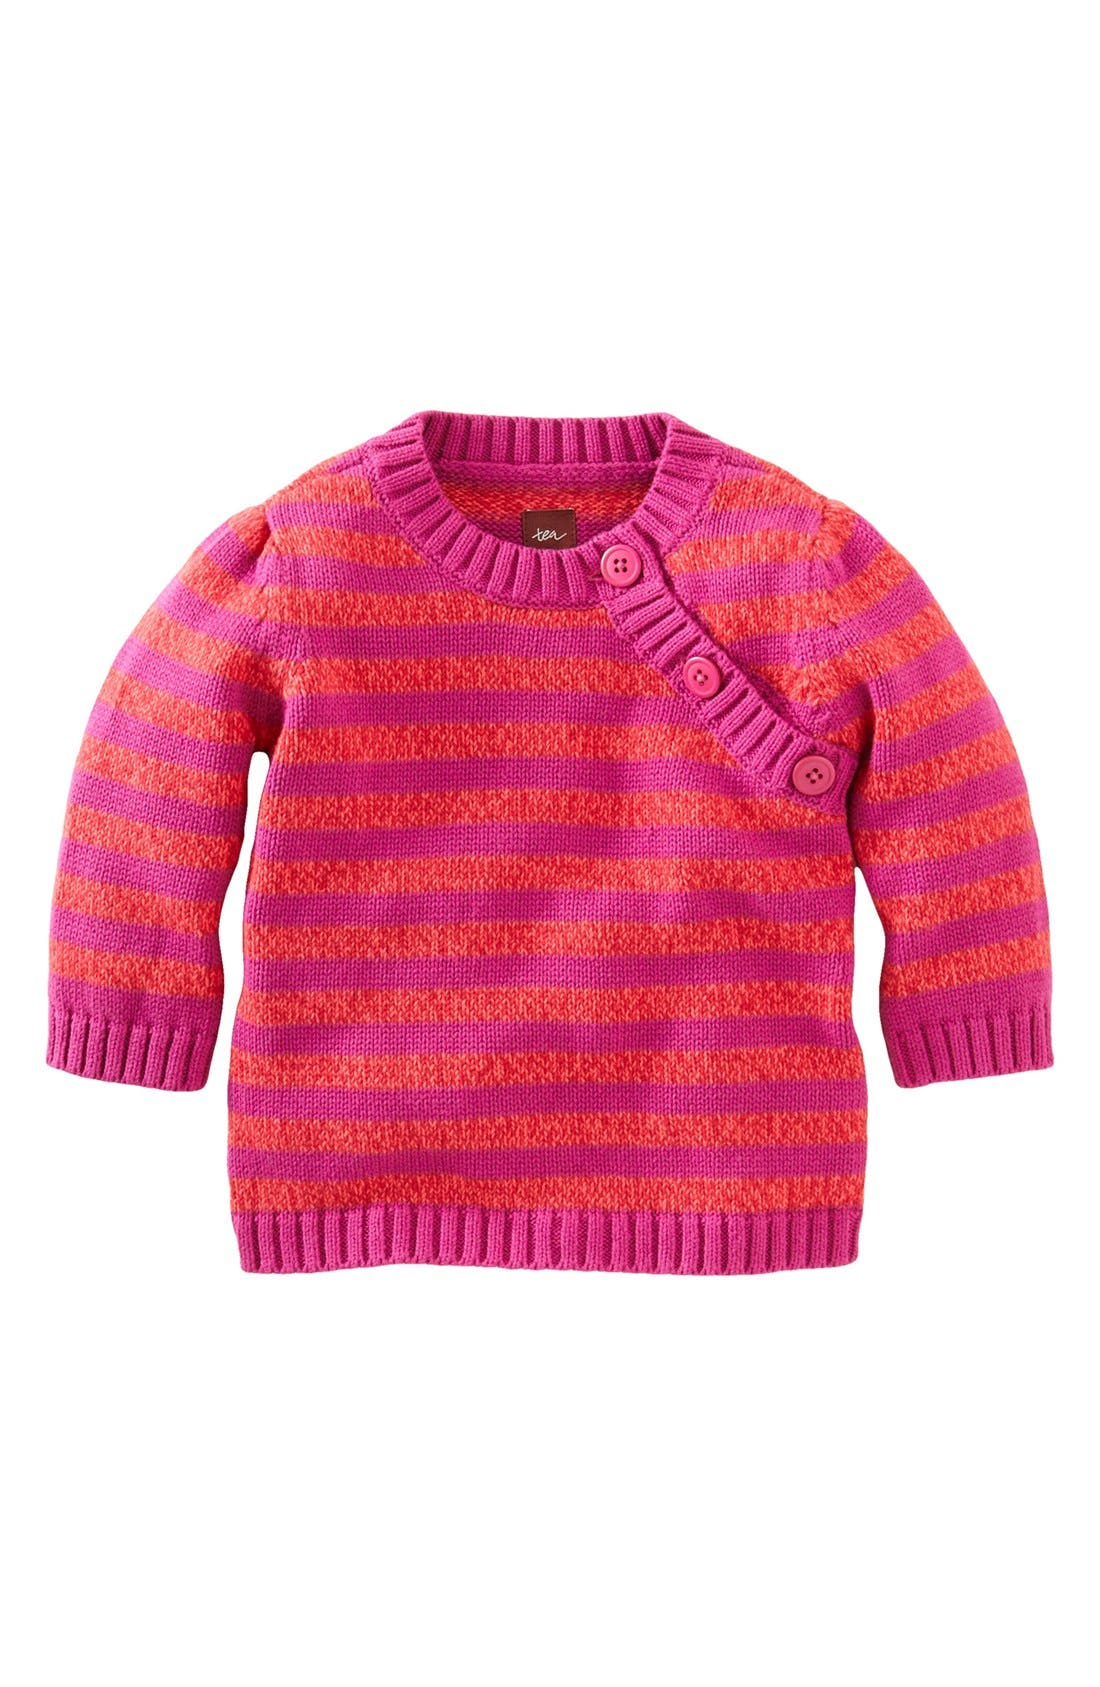 Main Image - Tea Collection Marled Stripe Sweater (Little Girls & Big Girls)